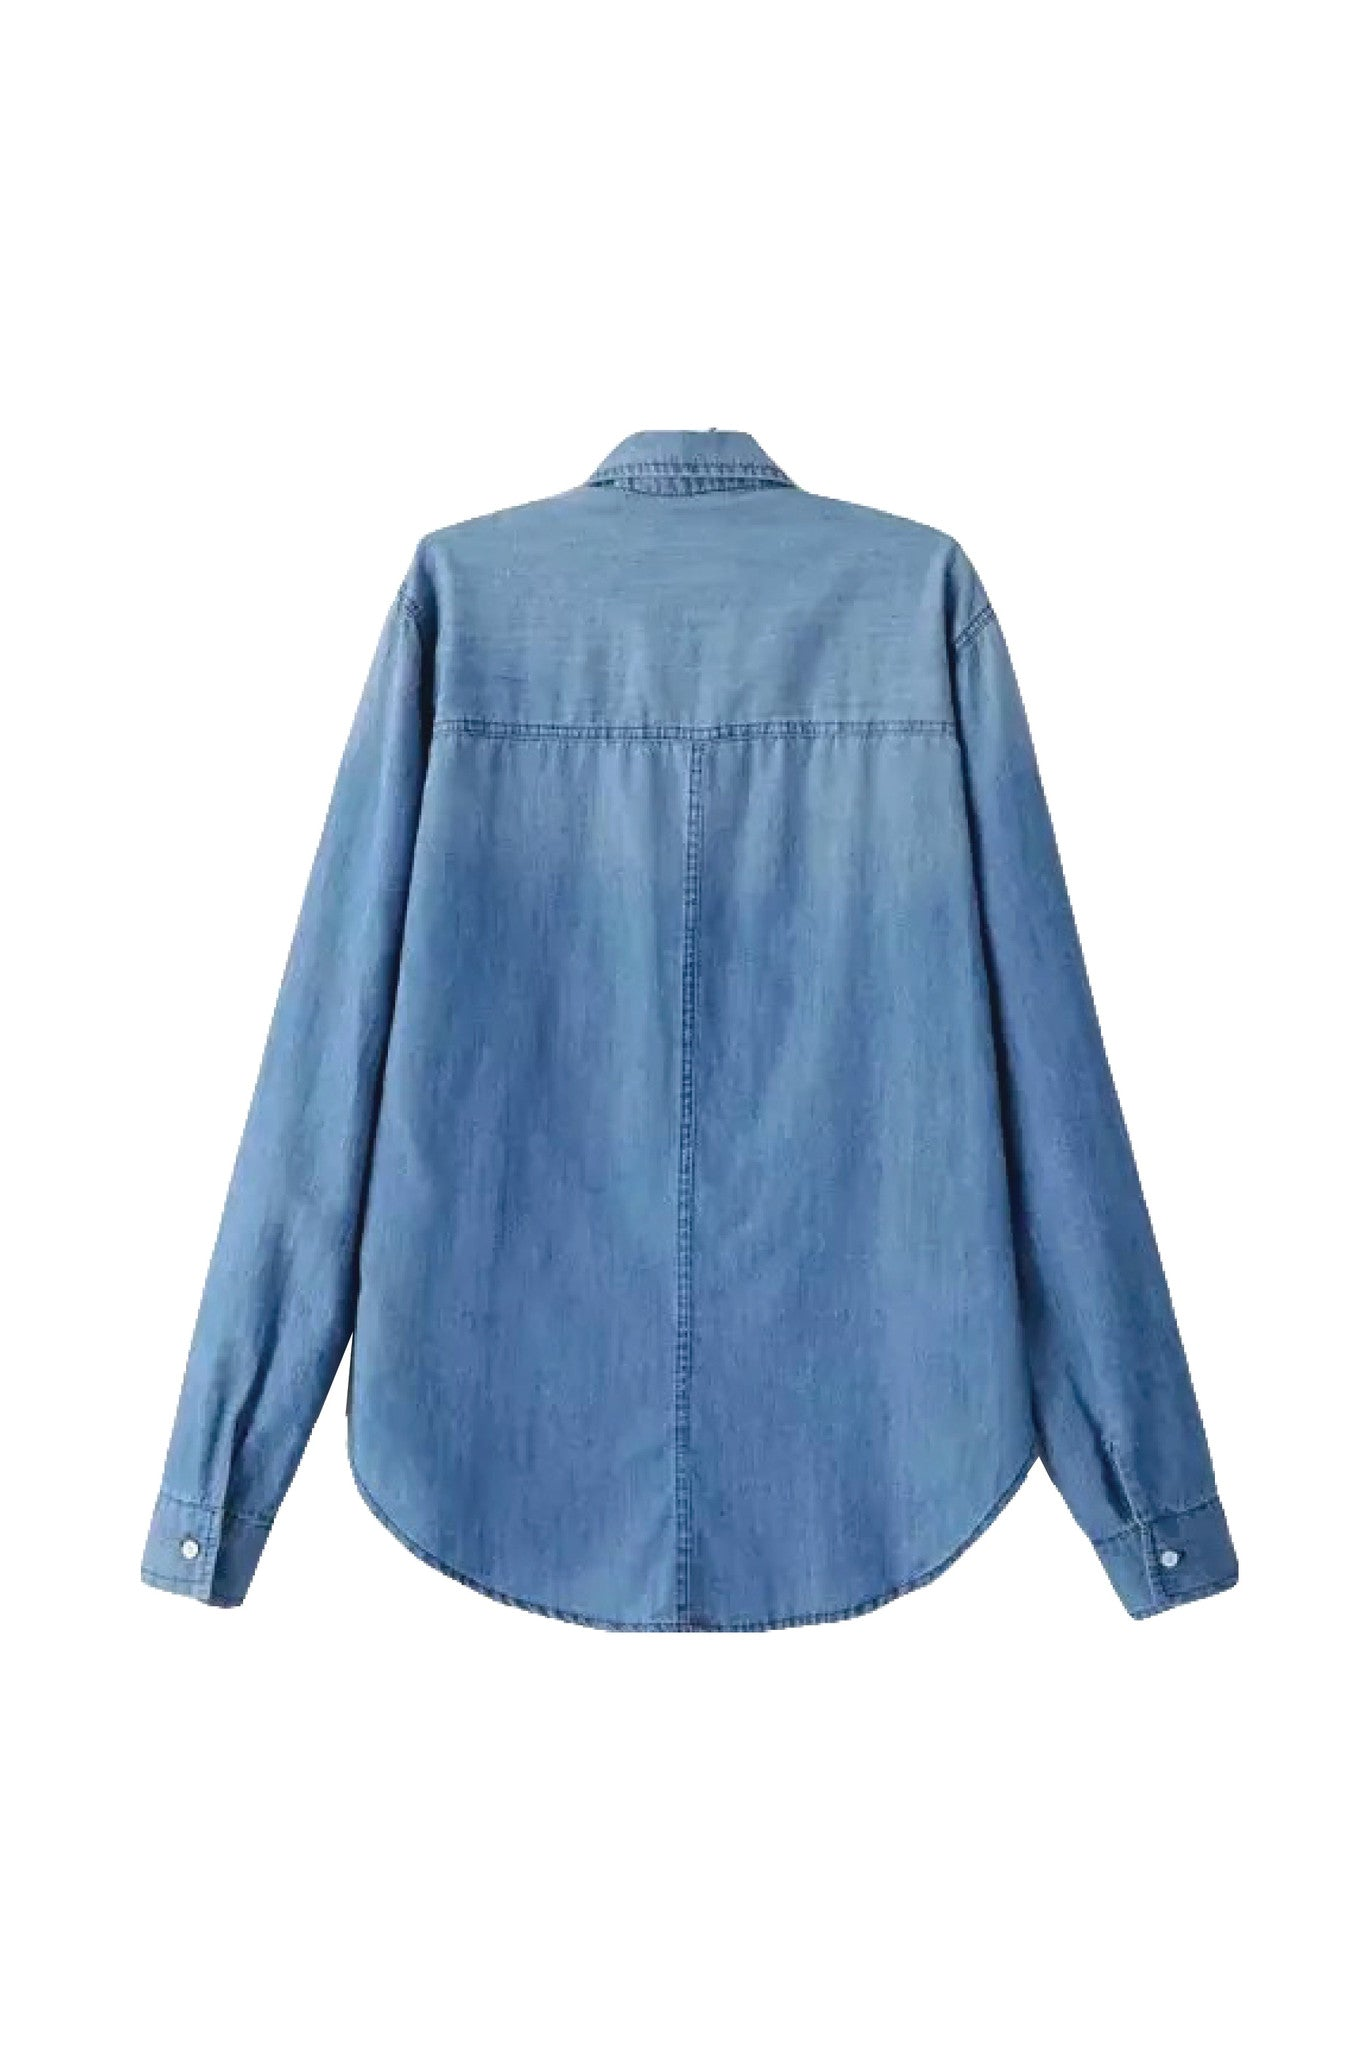 'Arizona' Slim Looking Blue Denim Button Up Long Sleeve Shirt Back from Goodnight Macaroon